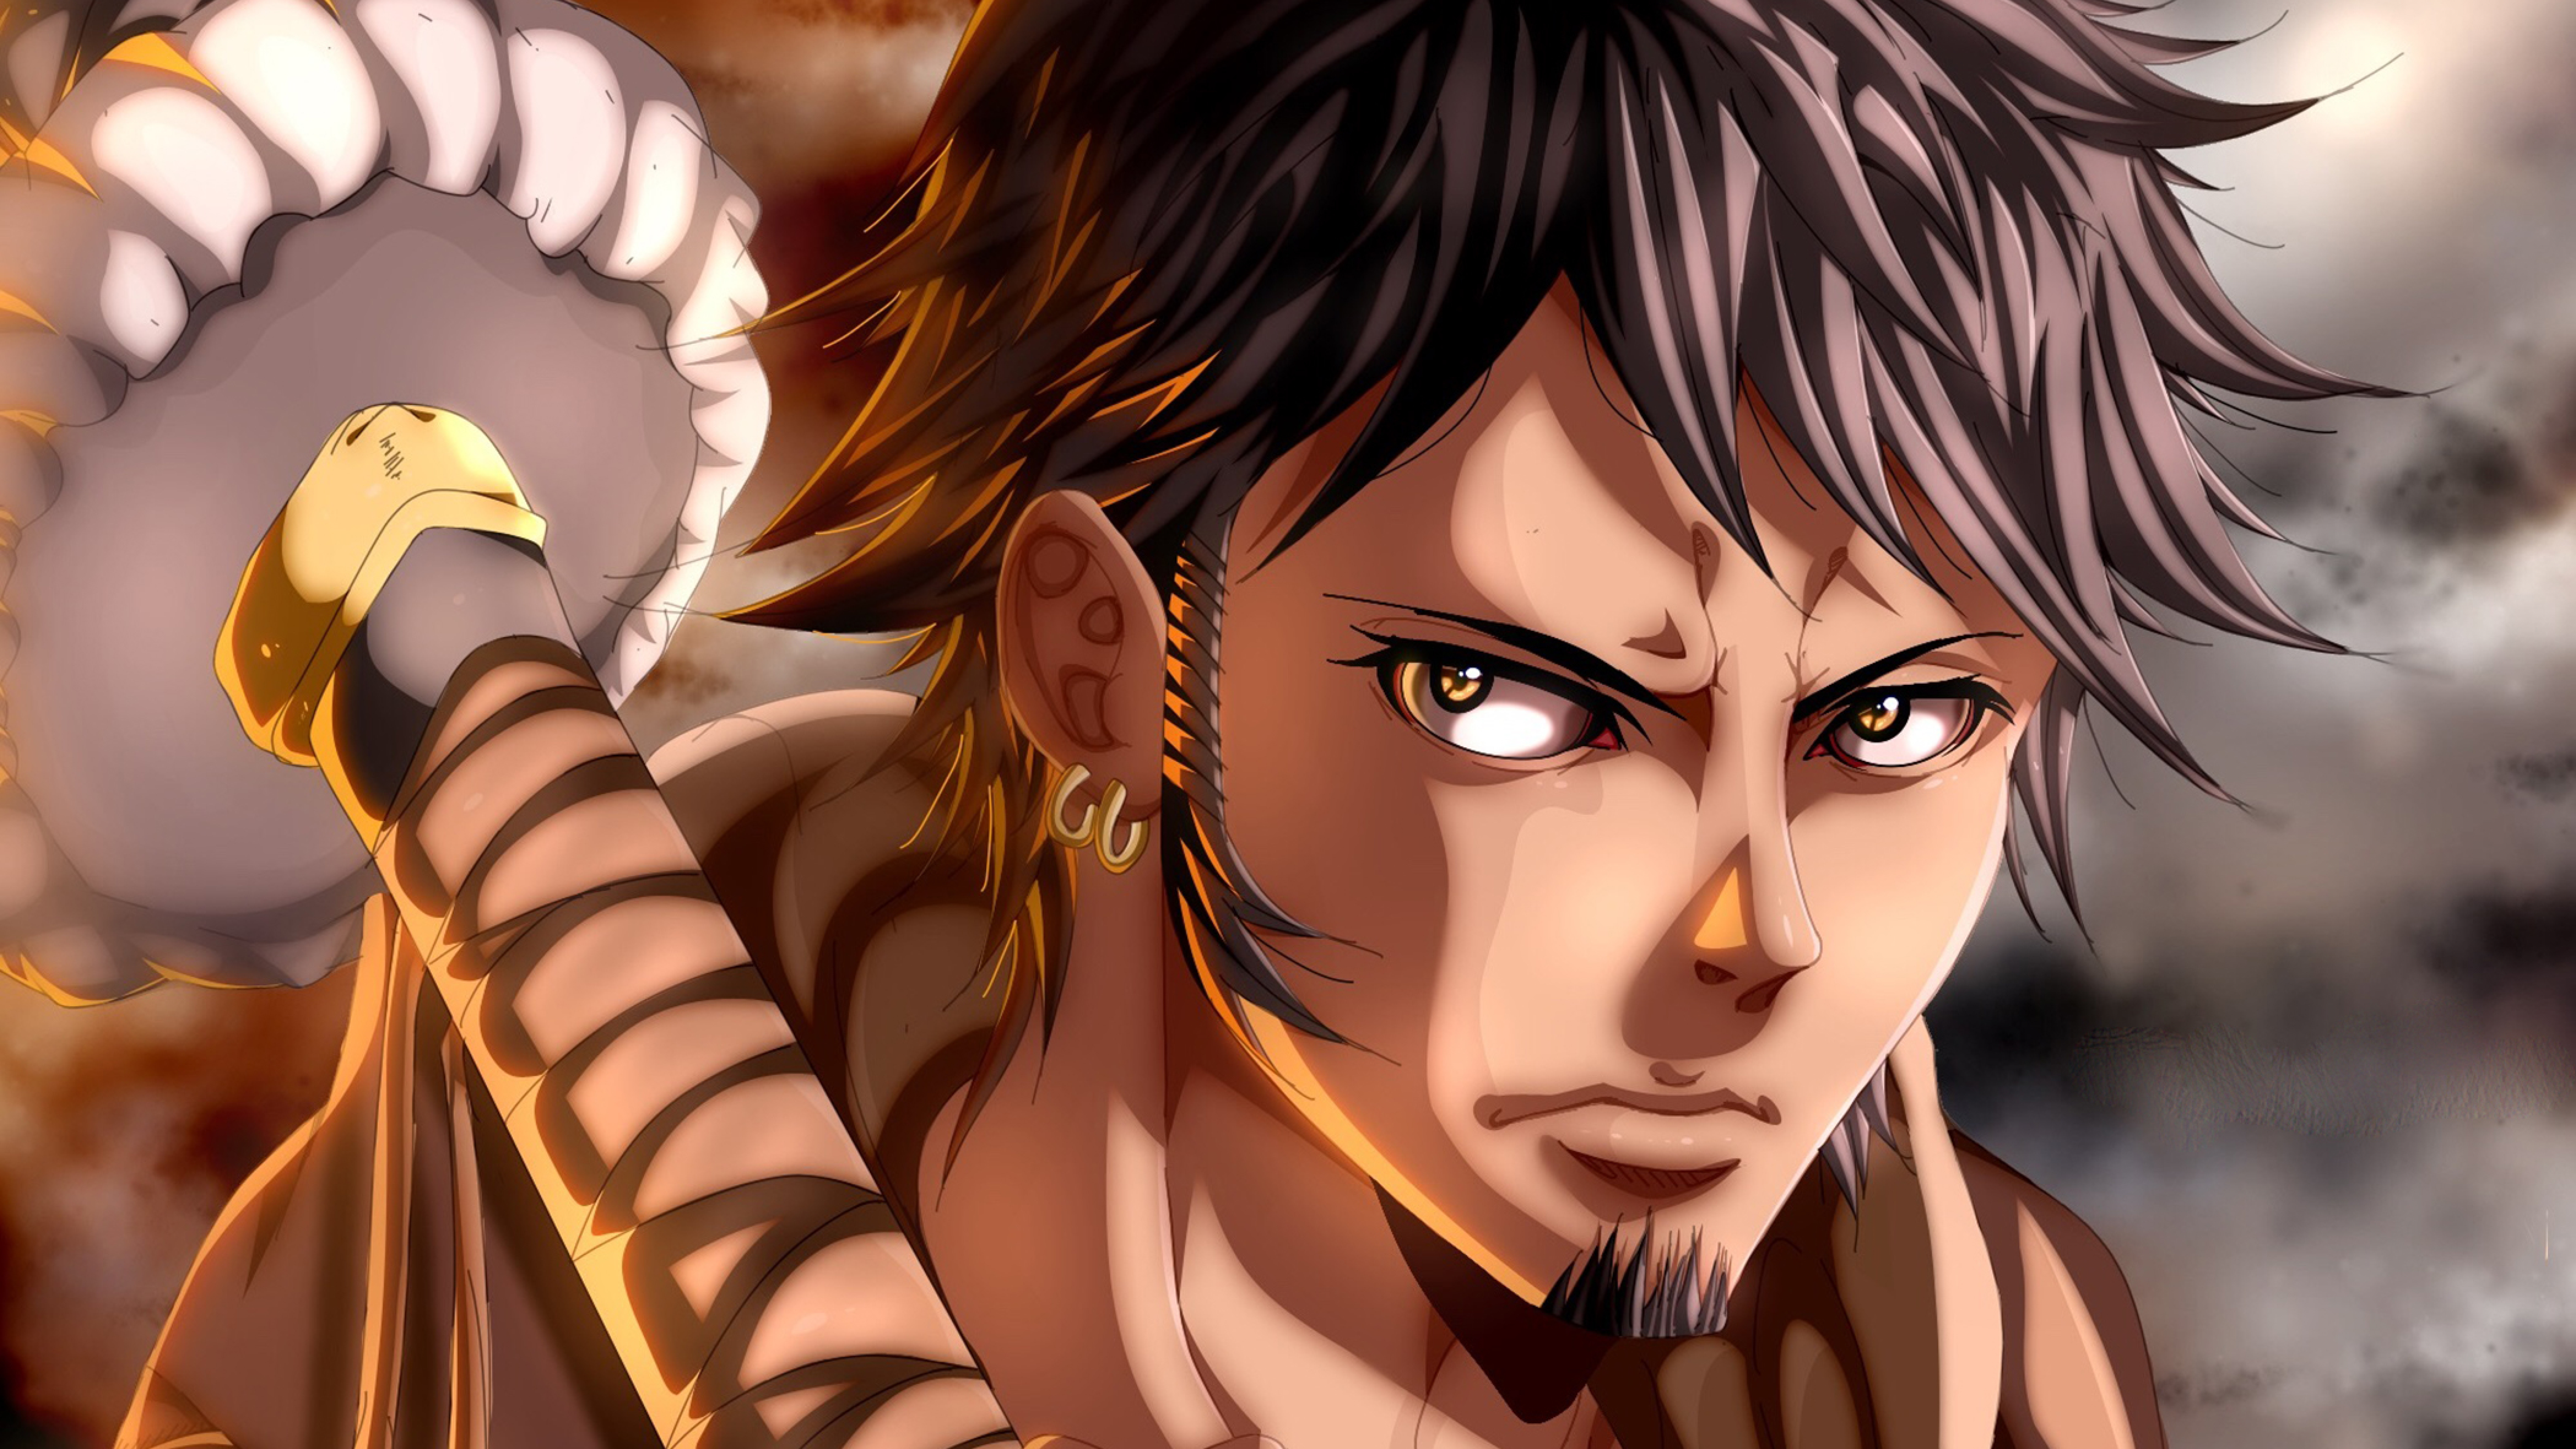 7680x4320 Trafalgar Law One Piece Anime 8k Wallpaper Hd Anime 4k Wallpapers Images Photos And Background